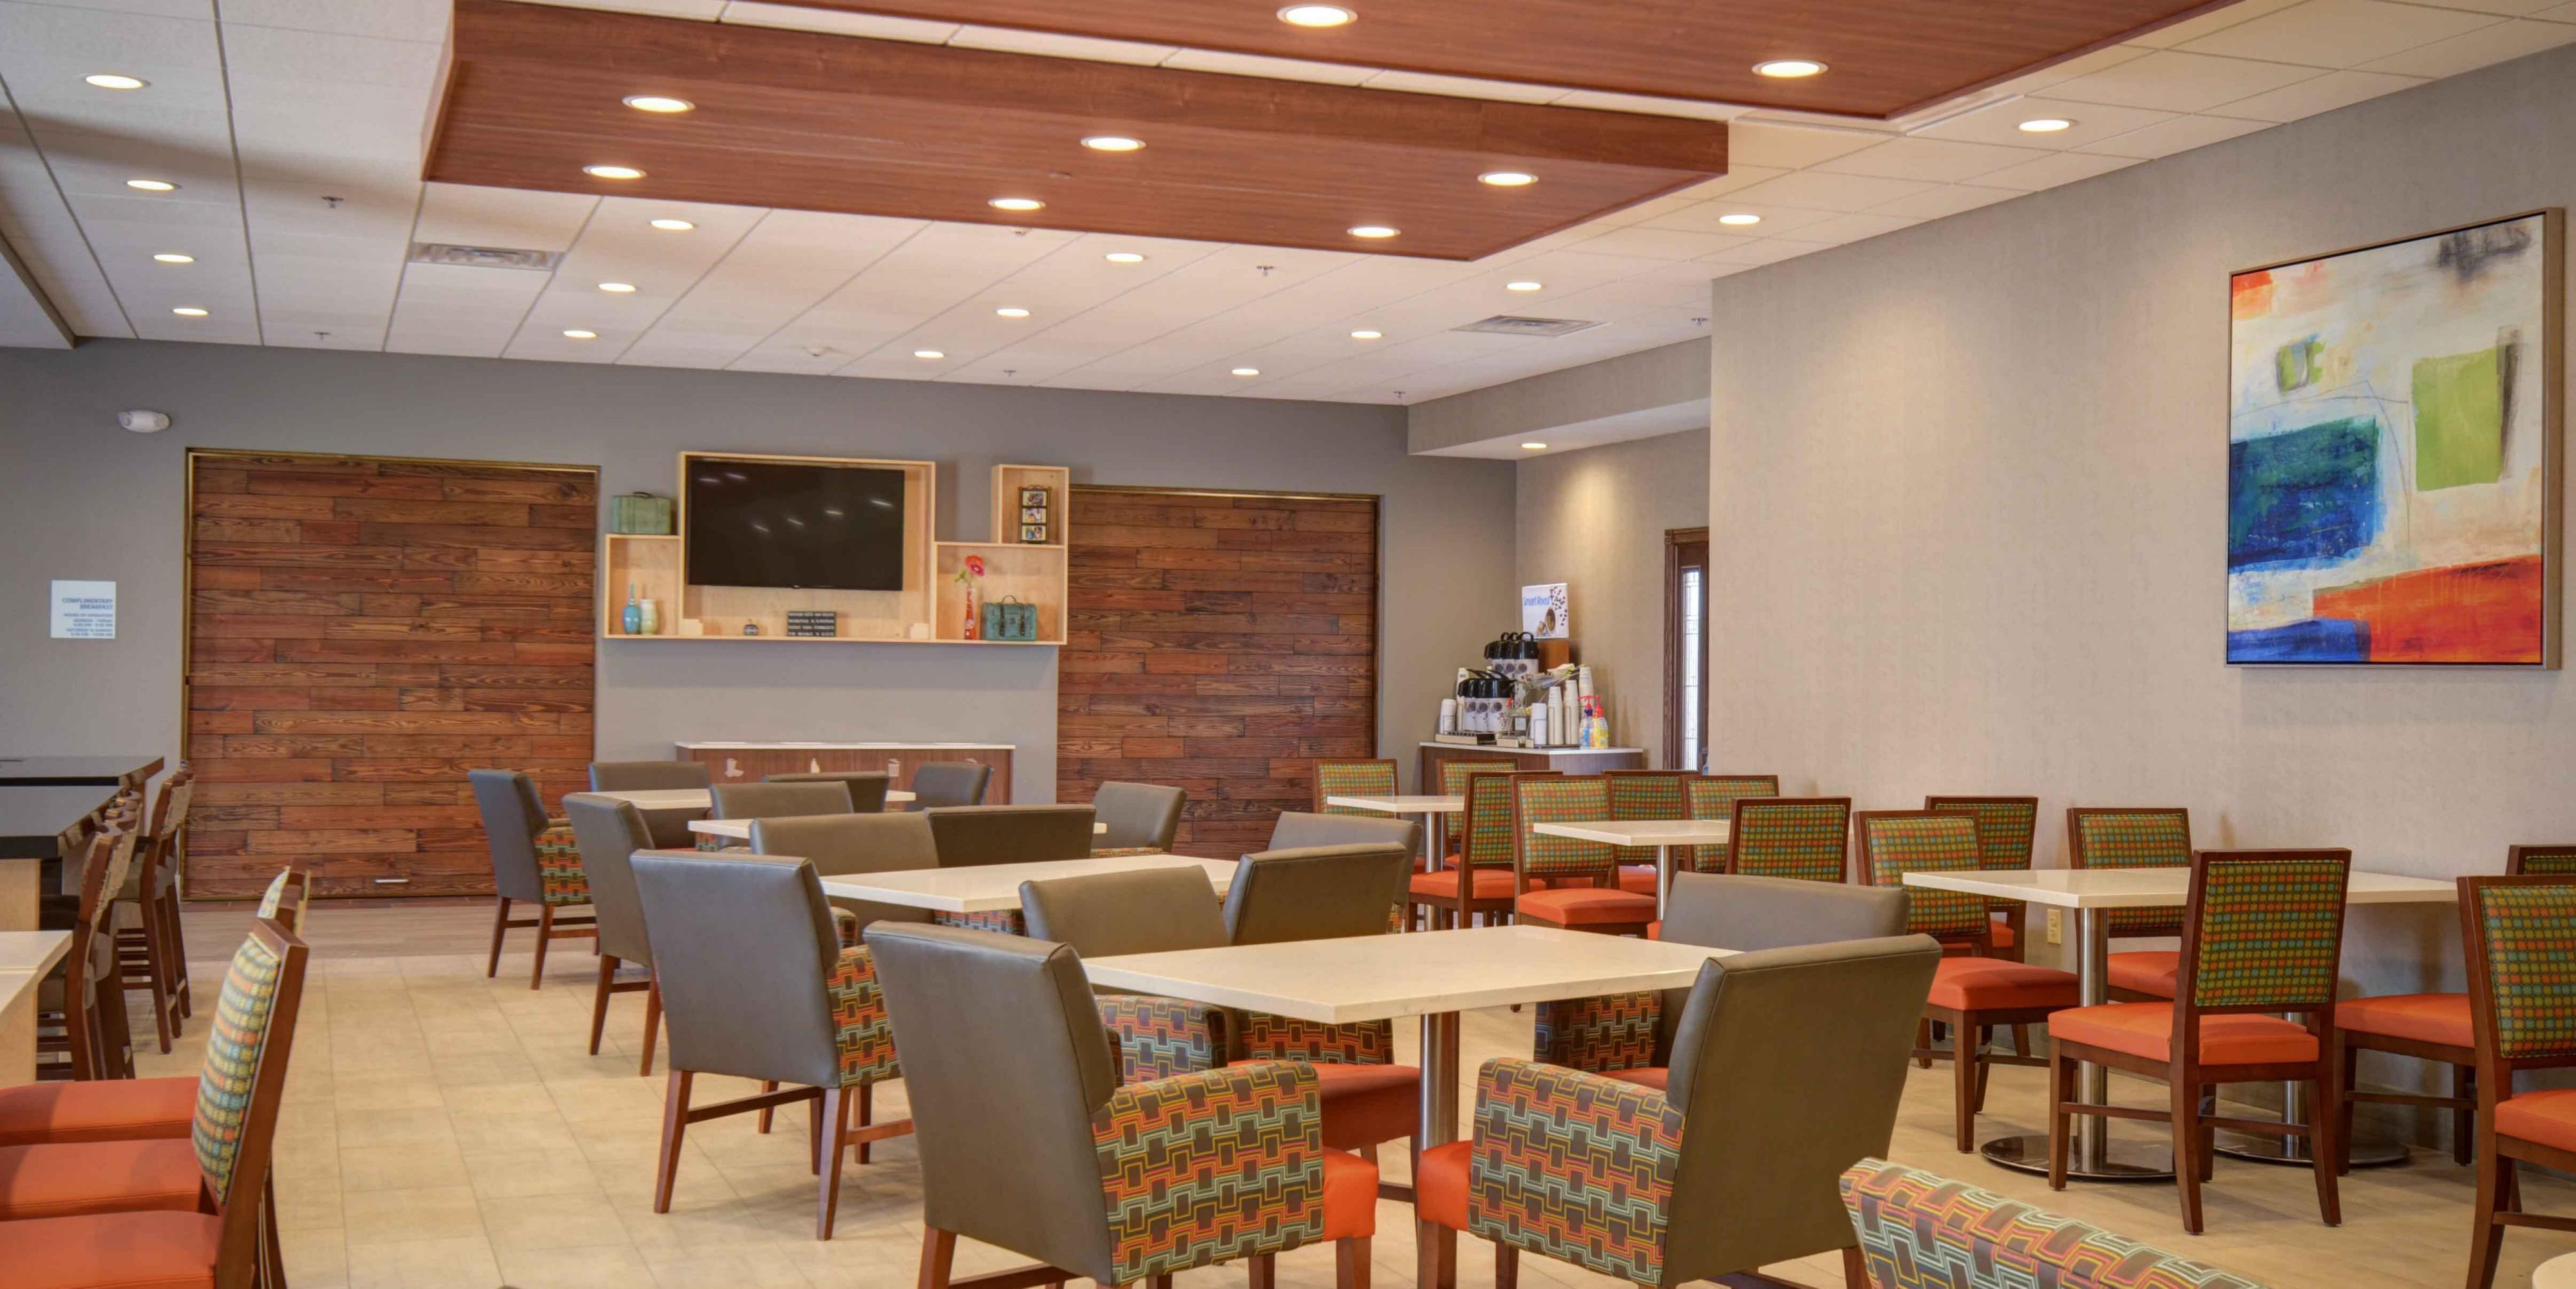 Holiday Inn Express & Suites North Platte Hotel in North